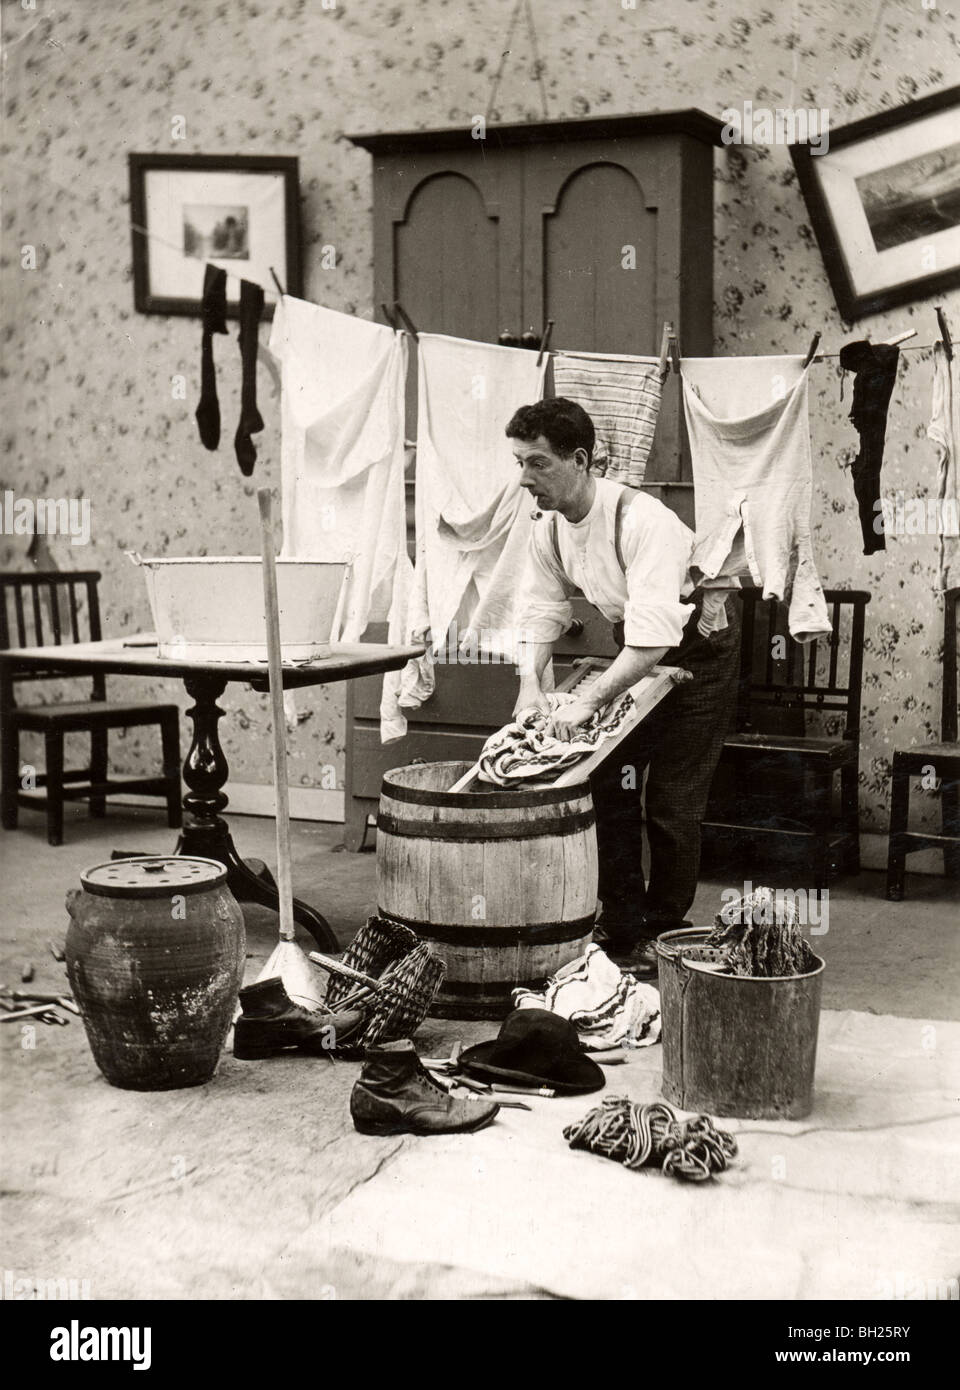 Pipe Smoking Bachelor Doing His Own Laundry - Stock Image